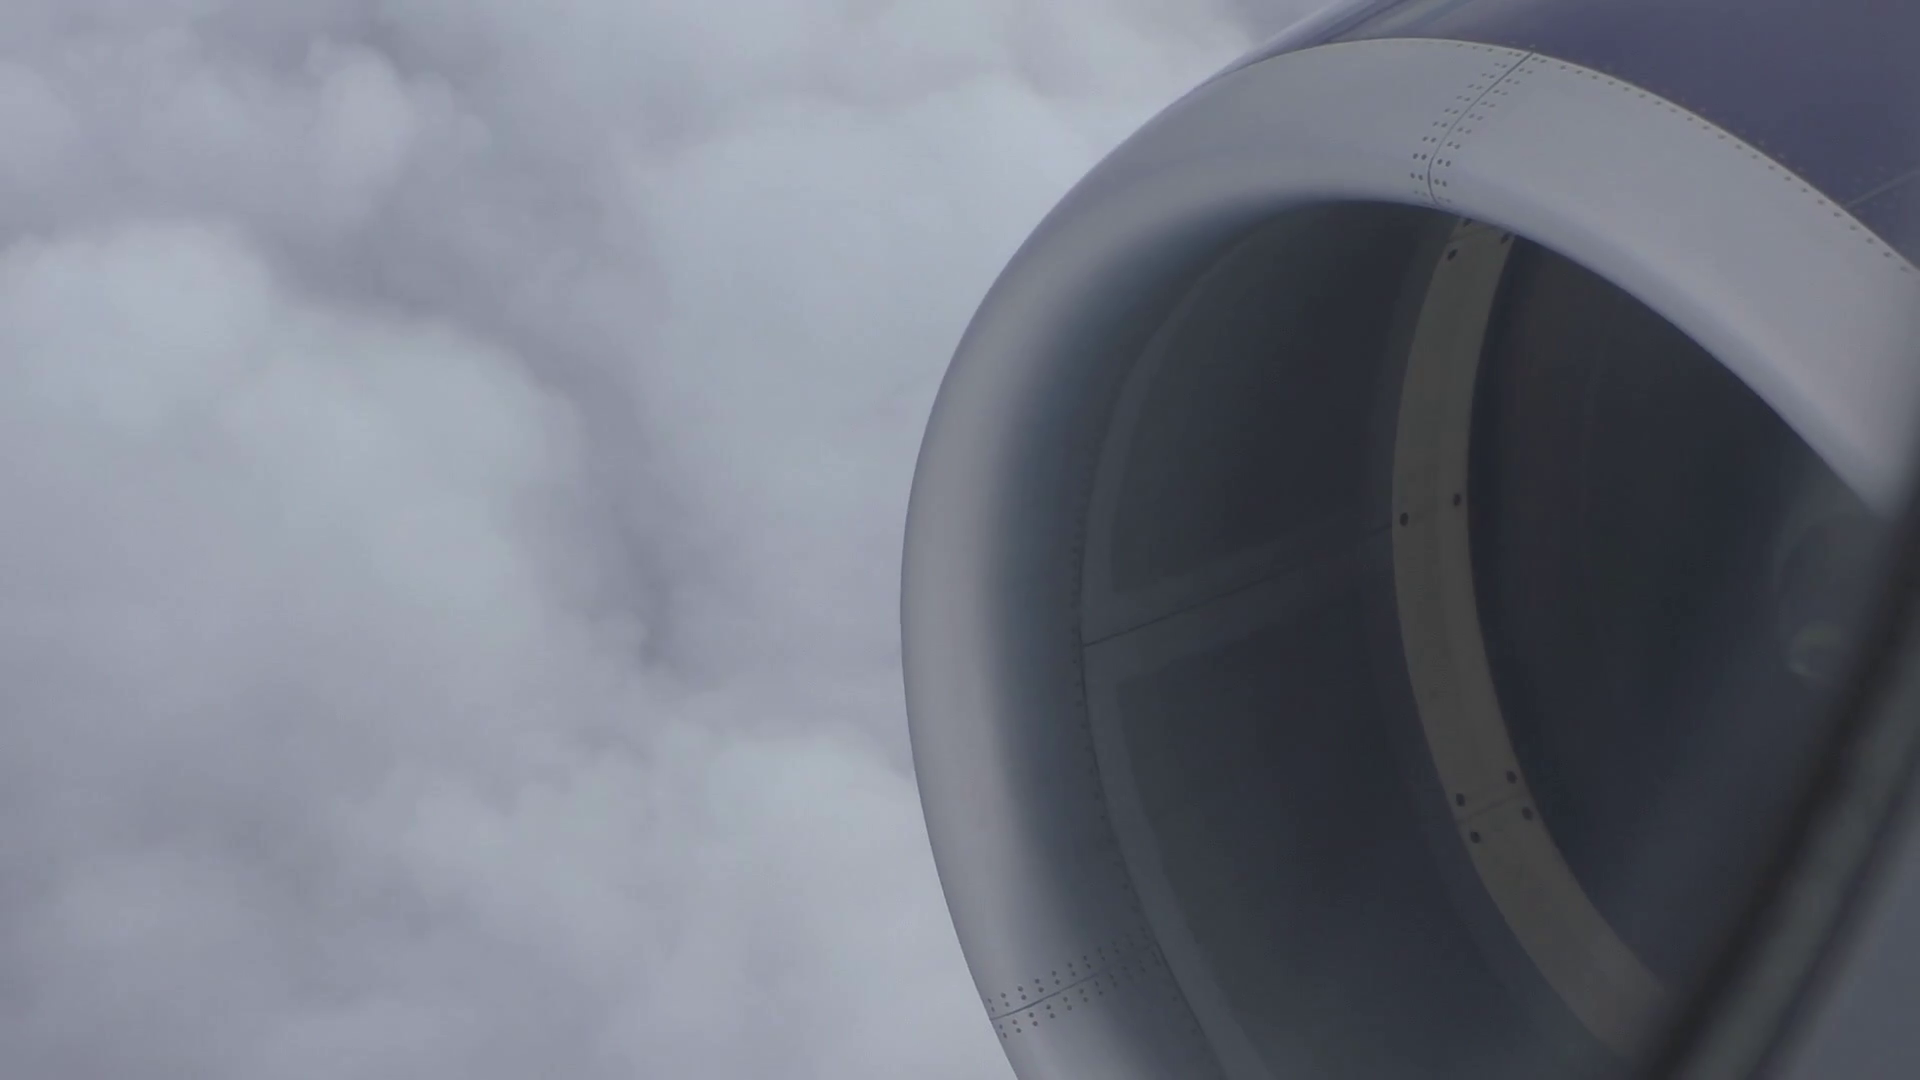 Close up of spinning aircraft engine in flight above grey clouds ...